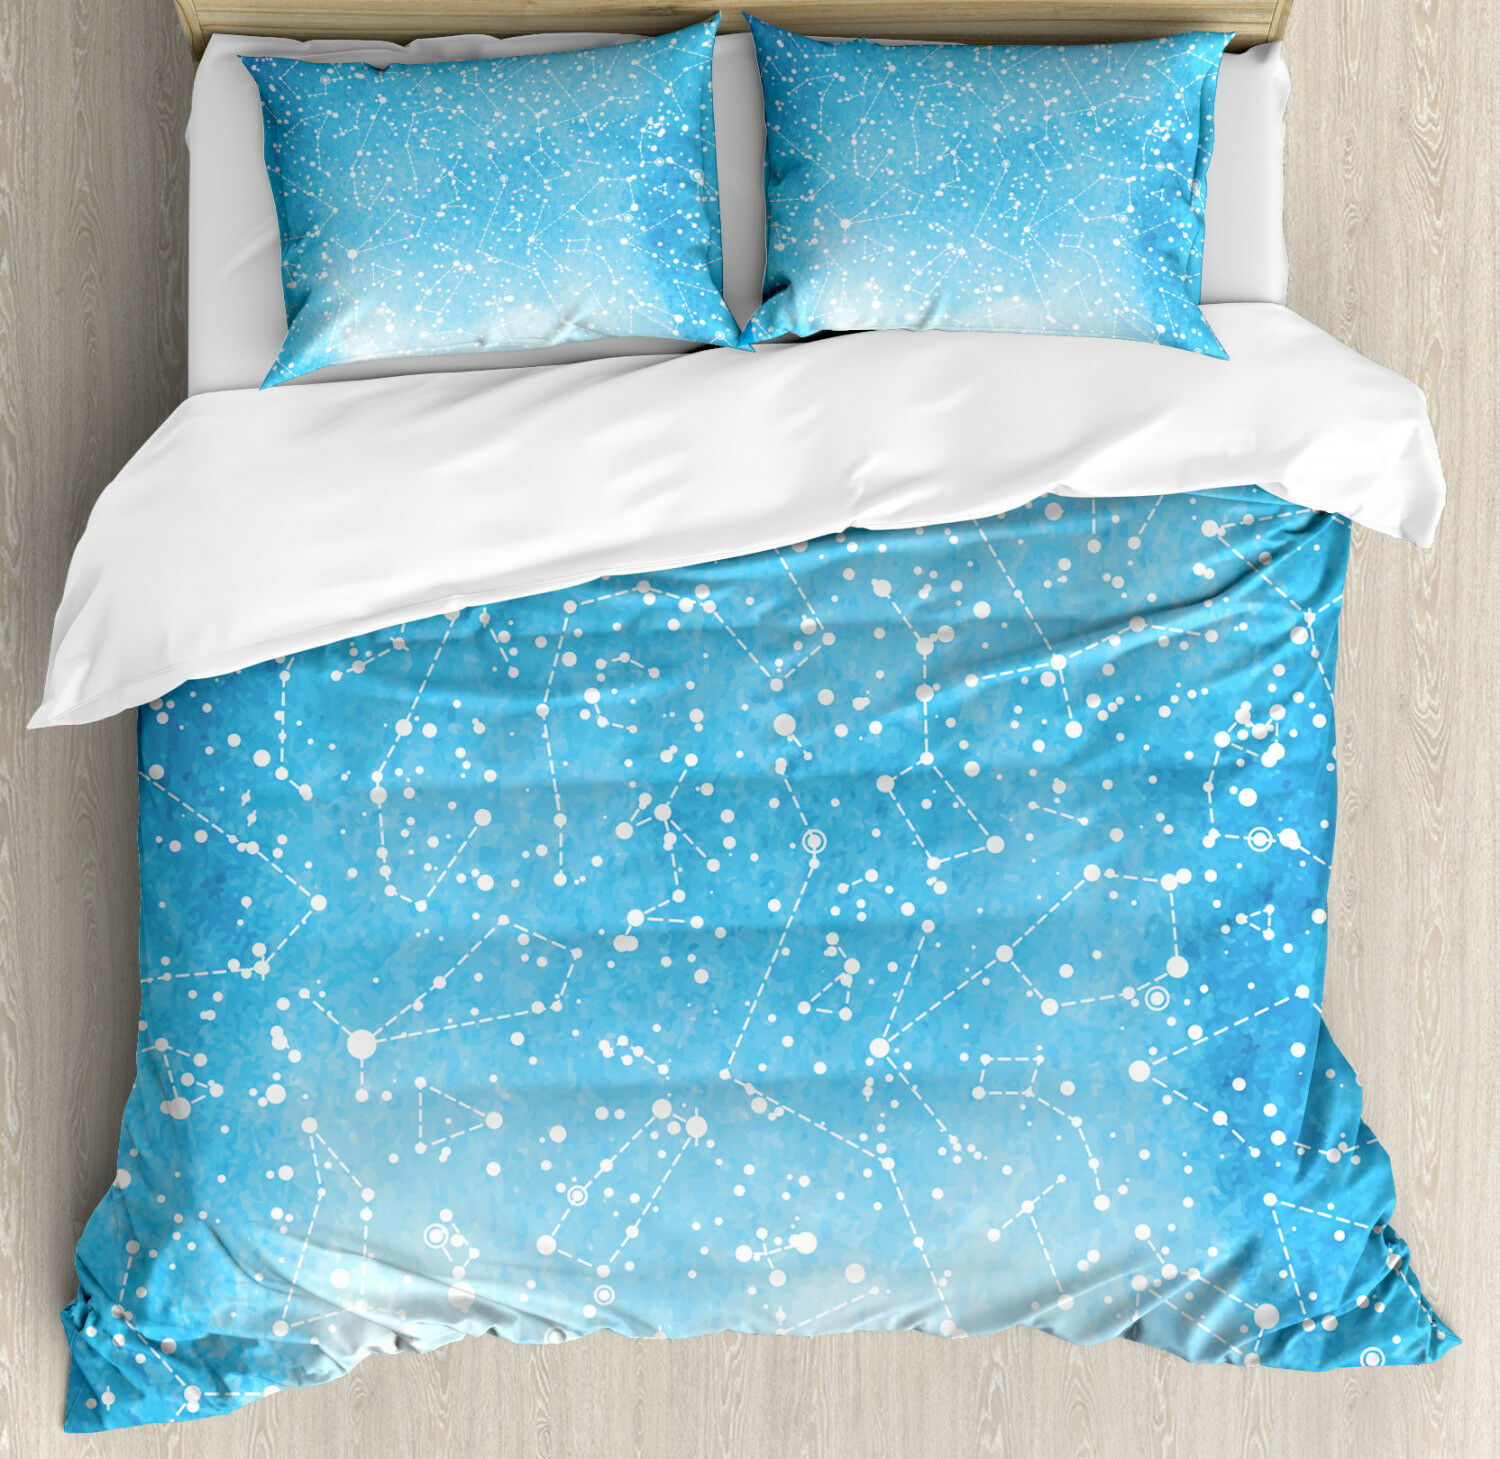 Constellation Duvet Cover Set with Pillow Shams Astronomy Artwork Print